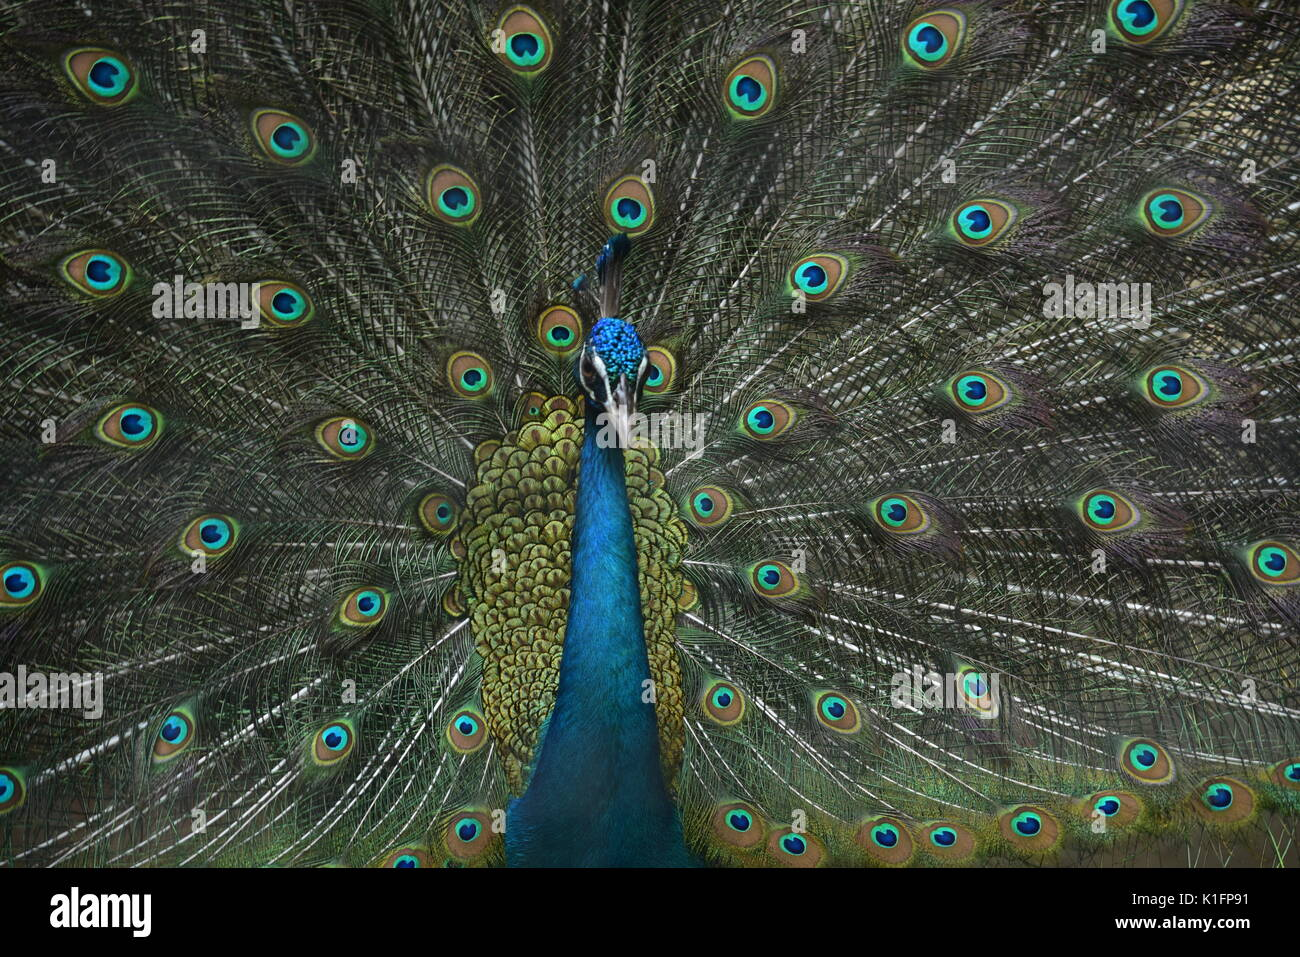 Peacock bird dancing in rain - Stock Image